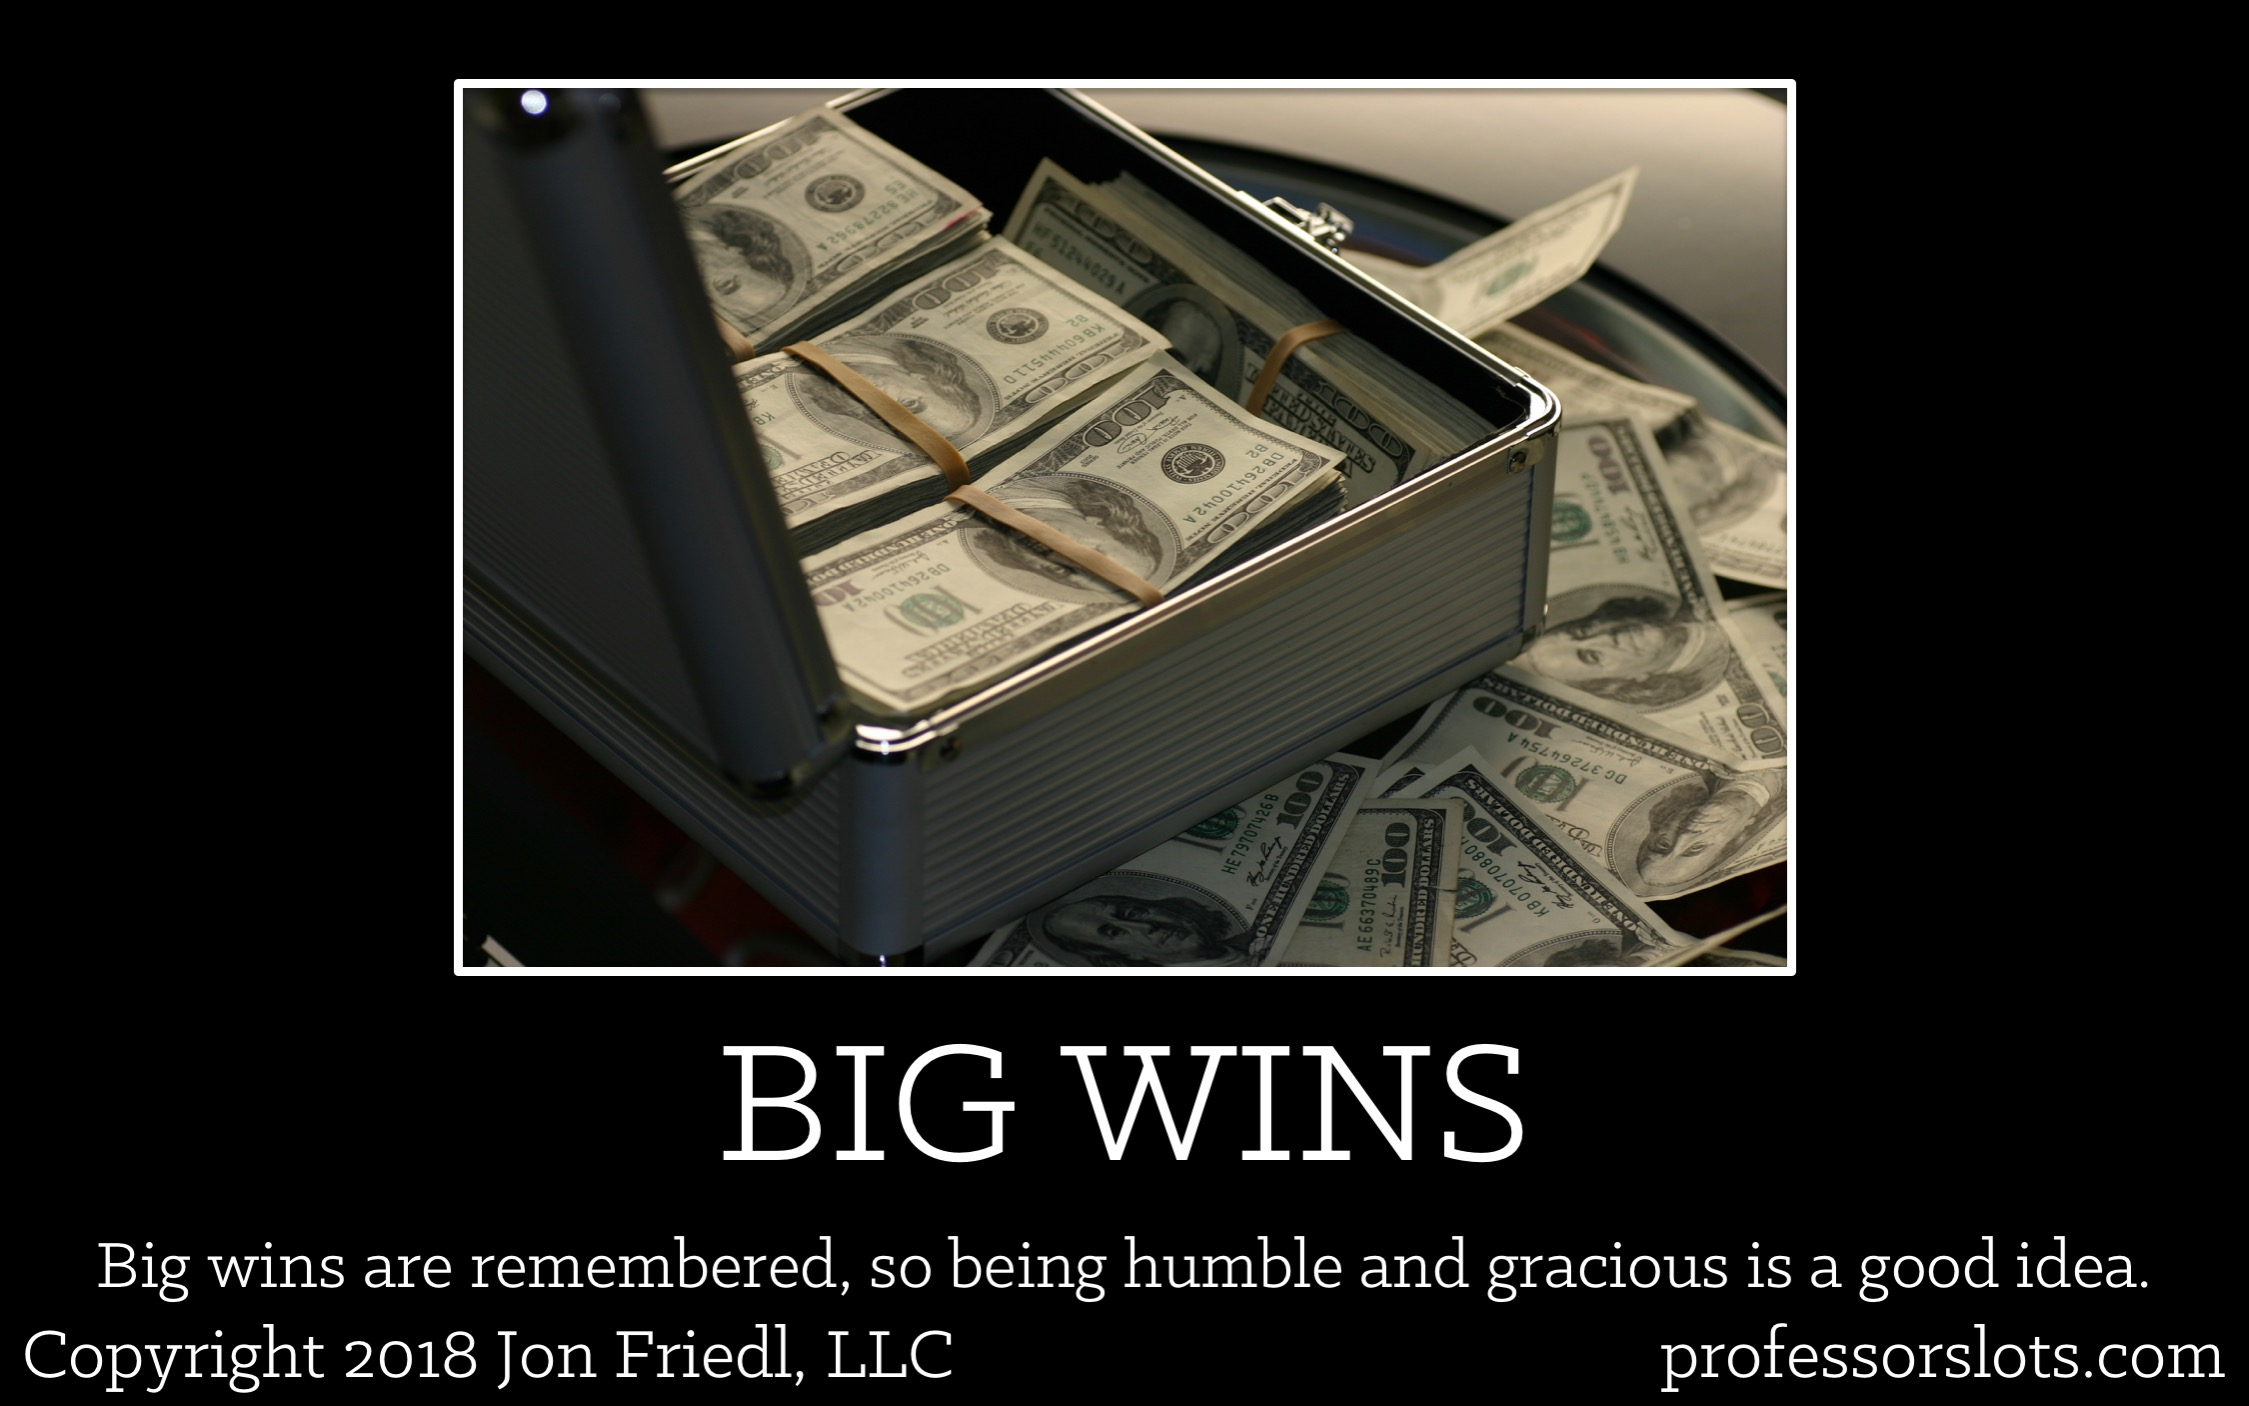 How I Won A Car: Big wins are remembered, so being humble and gracious is a good idea.